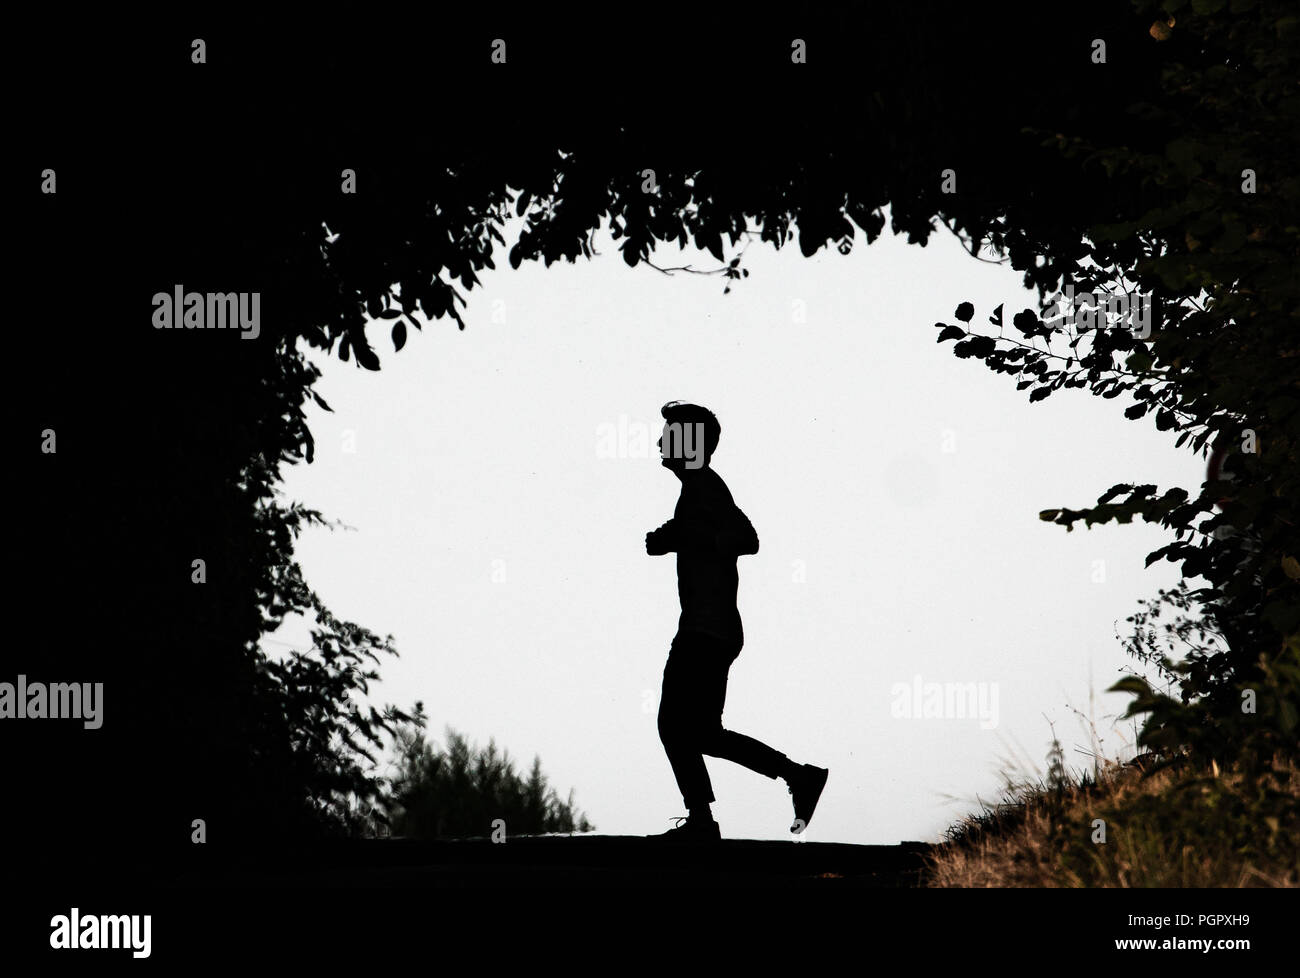 Frankfurt am Main, Germany. 28th Aug, 2018. In the evening, a man crosses a dirt road in the district of Nieder-Erlenbach against the light, which is surrounded by bushes. Credit: Frank Rumpenhorst/dpa/Alamy Live News - Stock Image